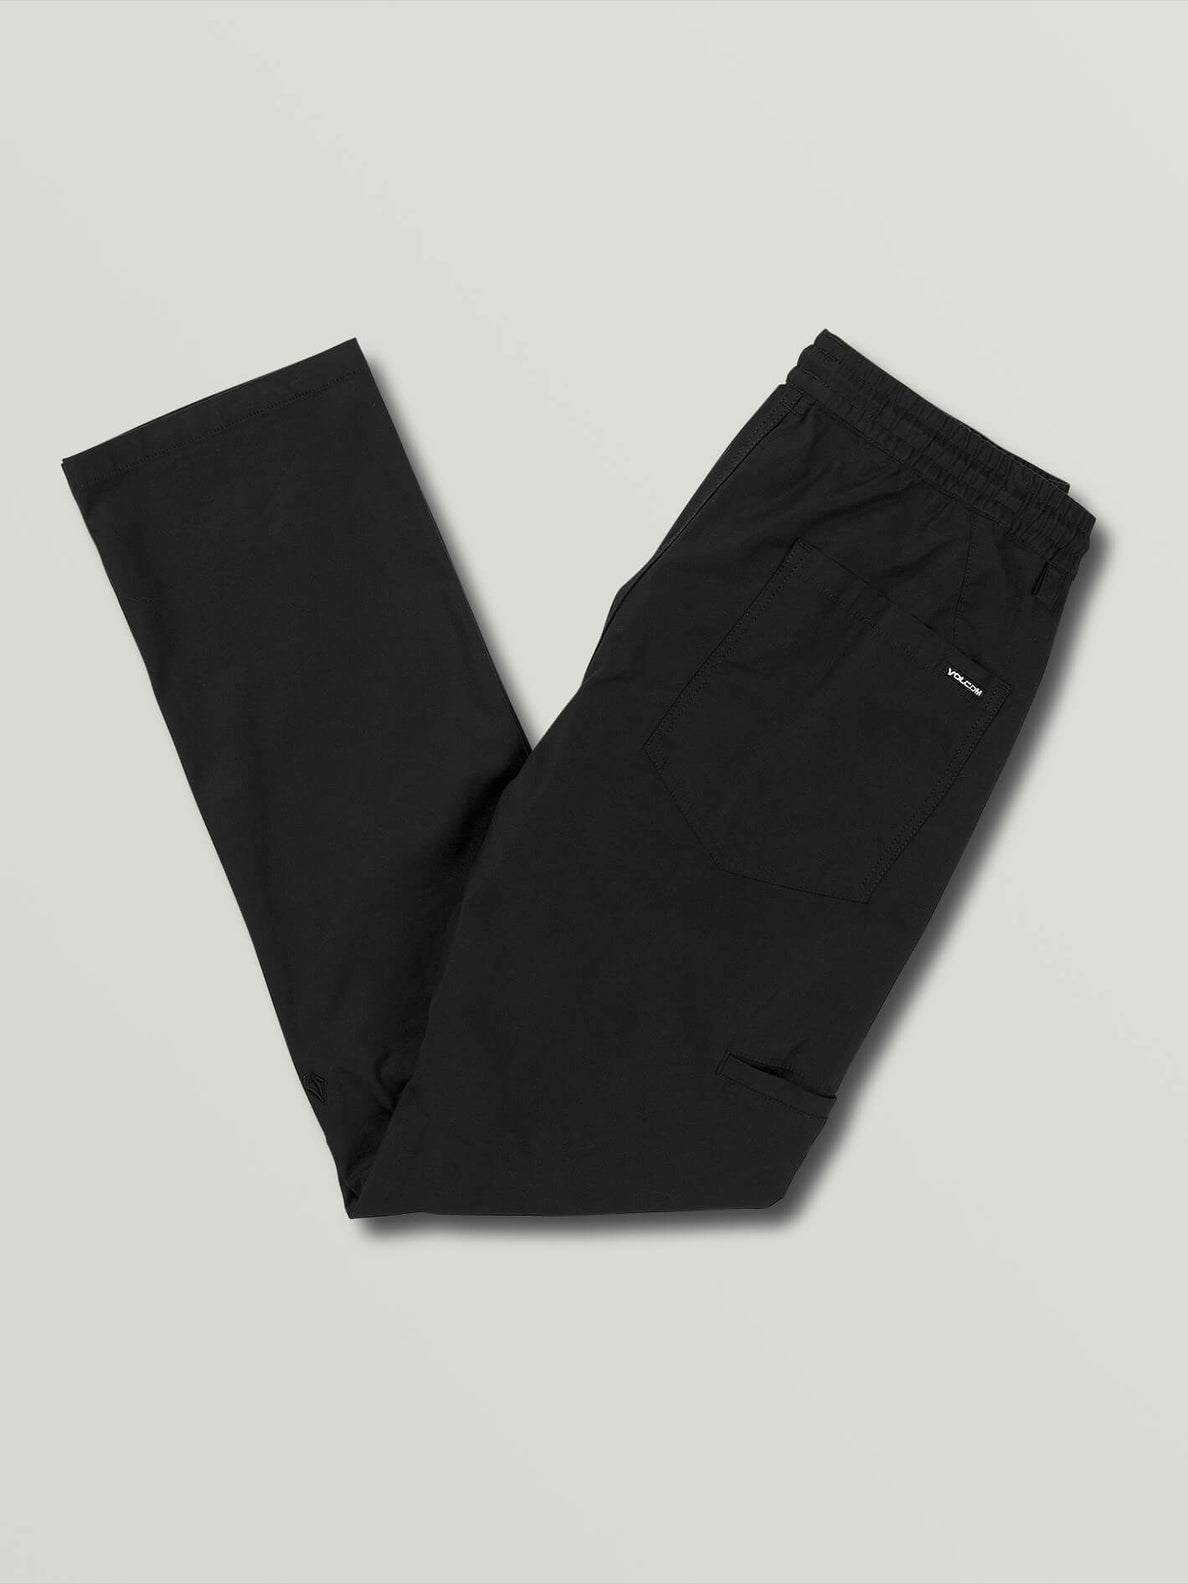 Riser Comfort Chino Pants (A1221900_BLK) [3]